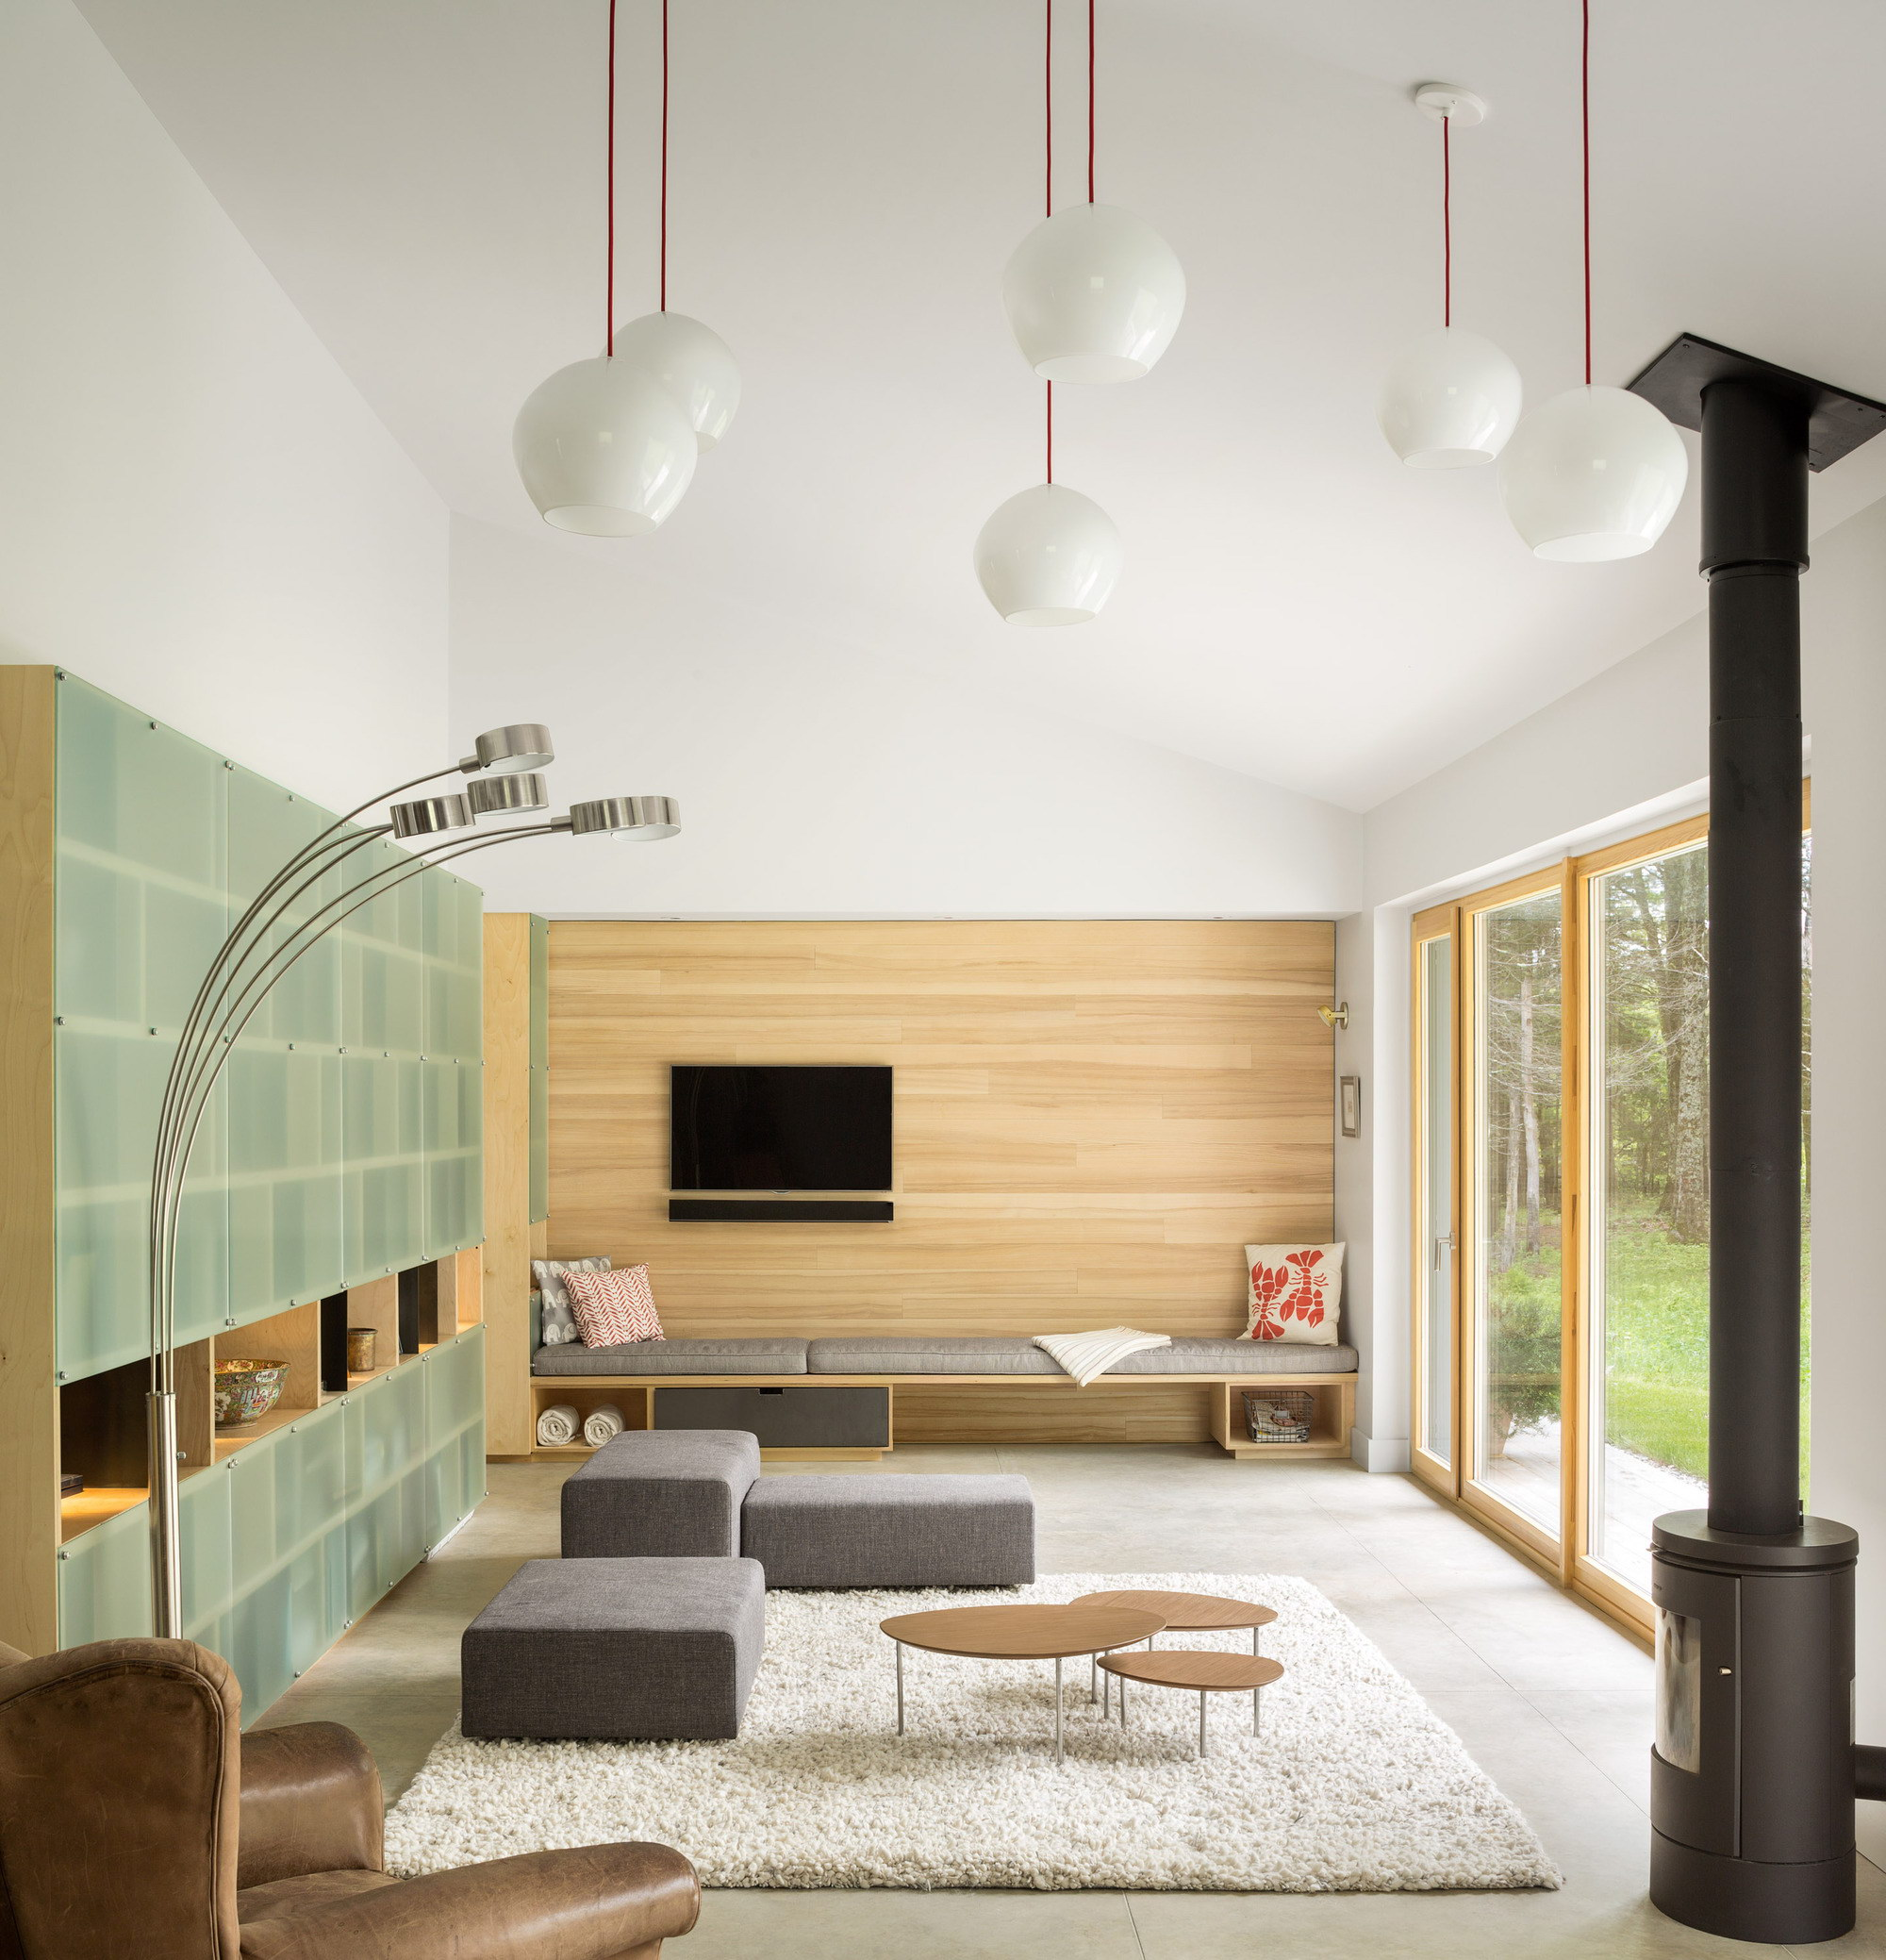 Cousins River Residence by GO Logic